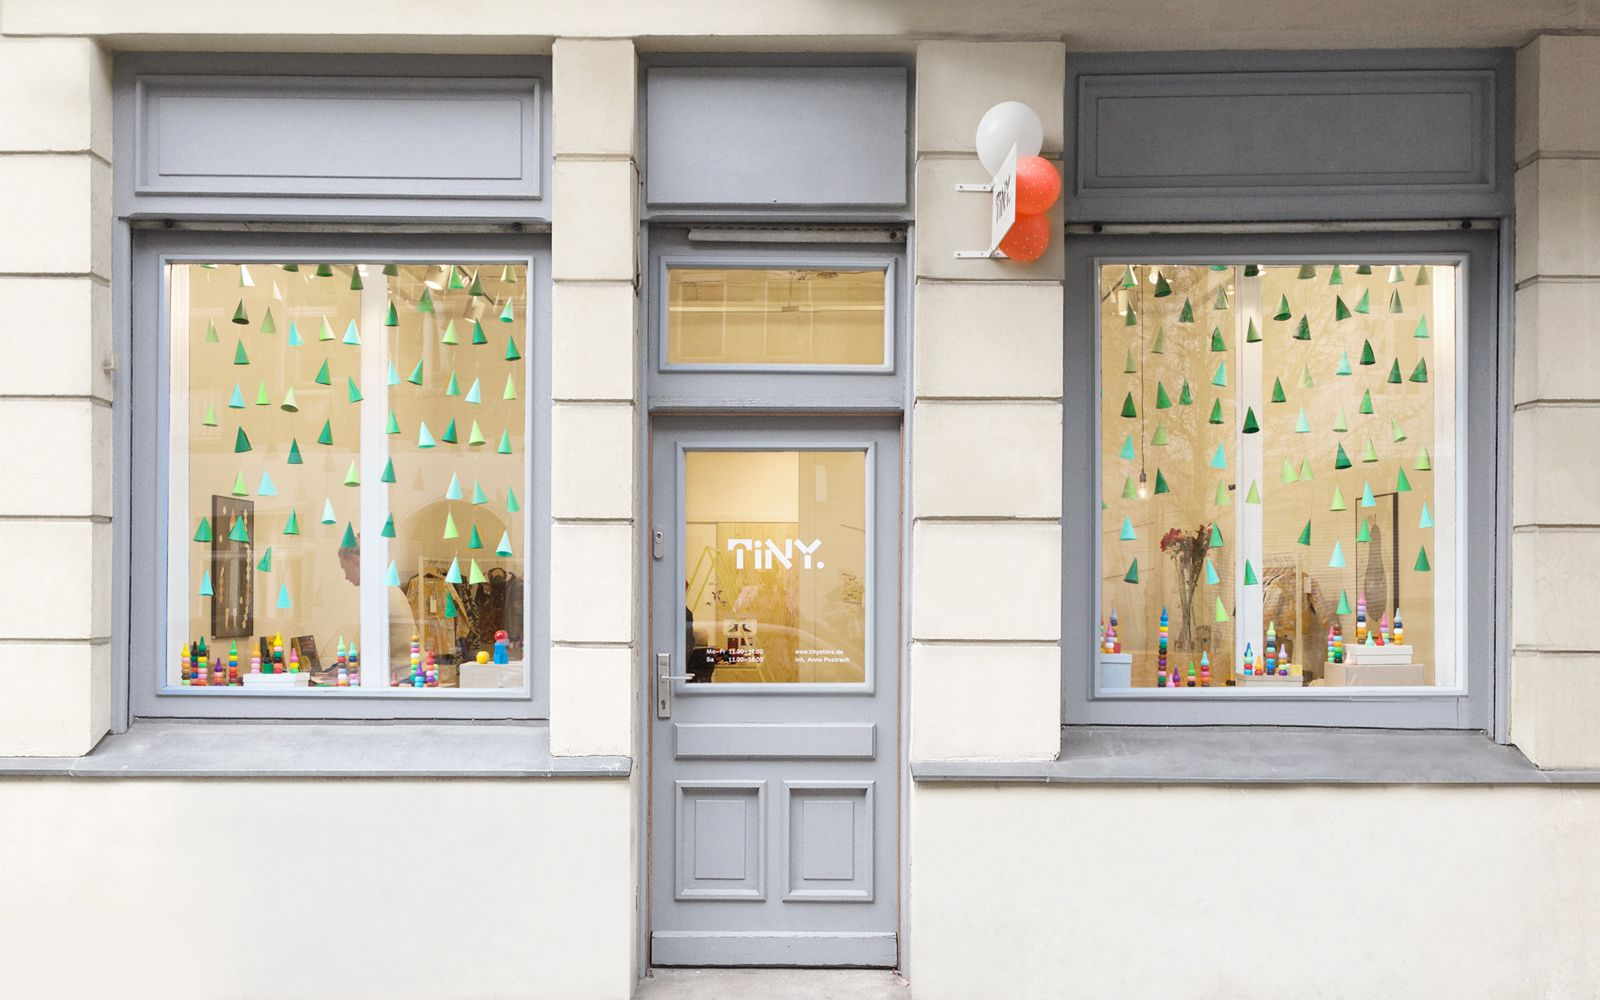 Fenster Stores Berlin Store Tiny Tiny Store Pinterest Store Store